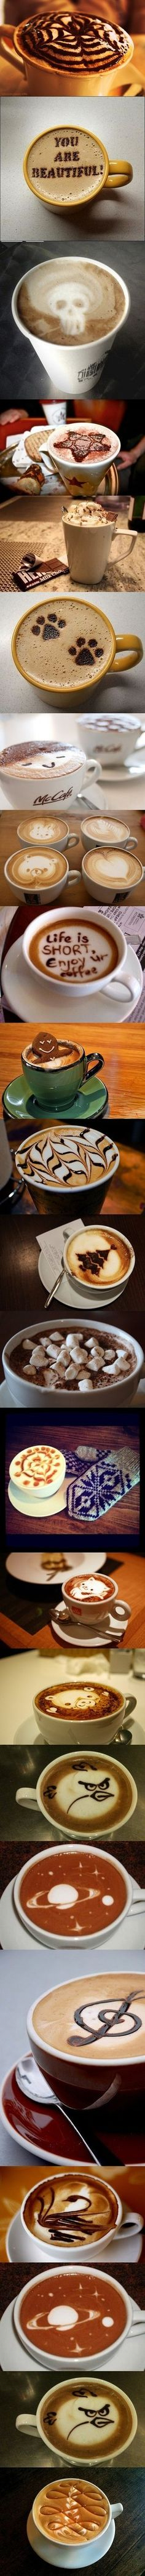 Coffee Art Latte Cream !  Make fancy coffee at home for $1 !!  Buy a milk frother for $10